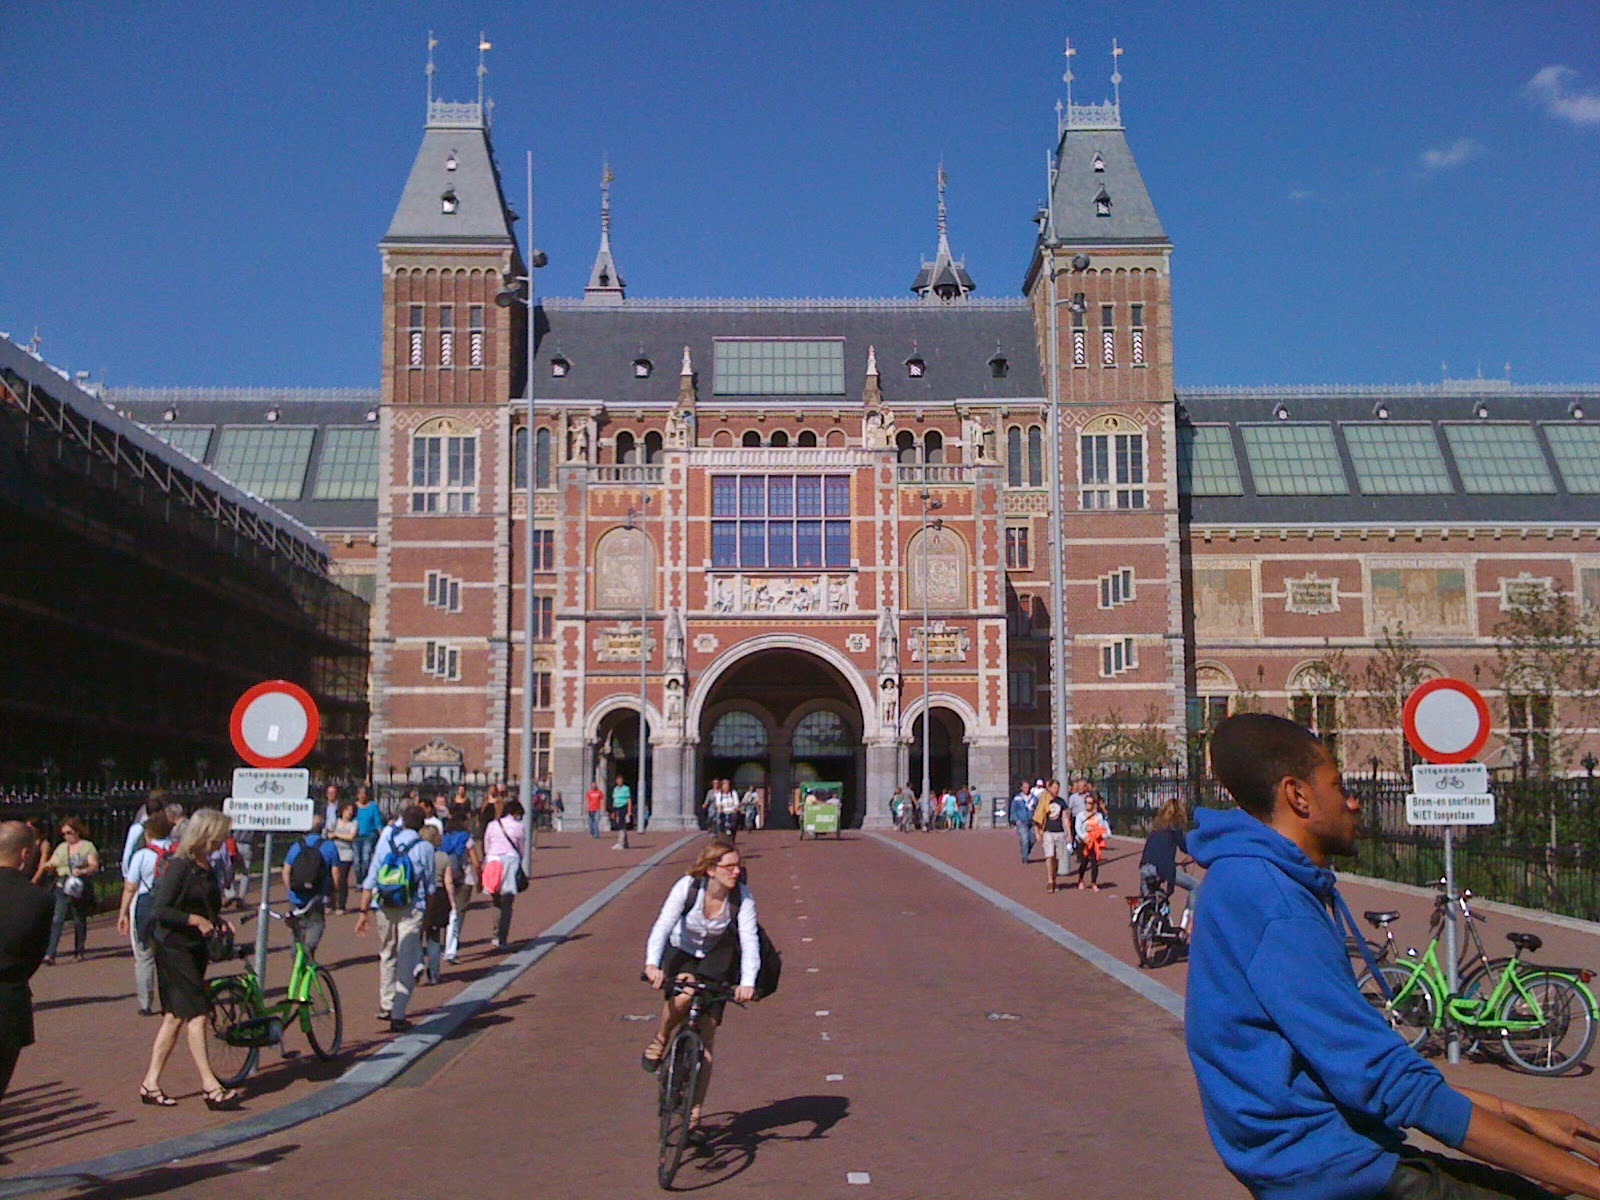 Visit the Rijksmuseum in Amsterdam and learn about Dutch history